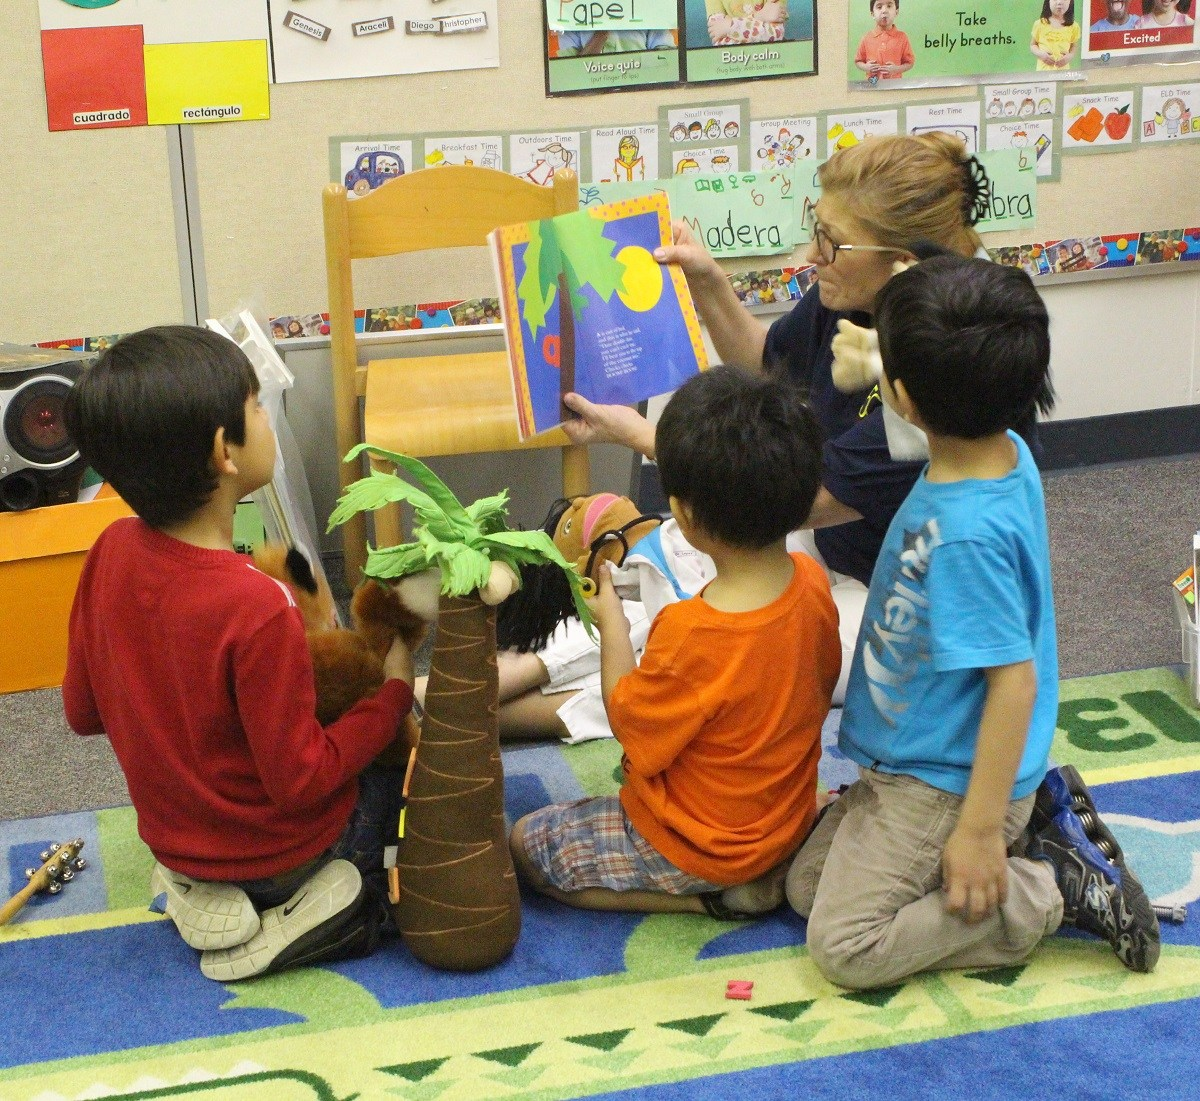 literature program for preschool The little saints program is not a phonics or math or academic preschool program, although phonics and handwriting and basic math information is included it is heavily based in literature, religion, and the arts.